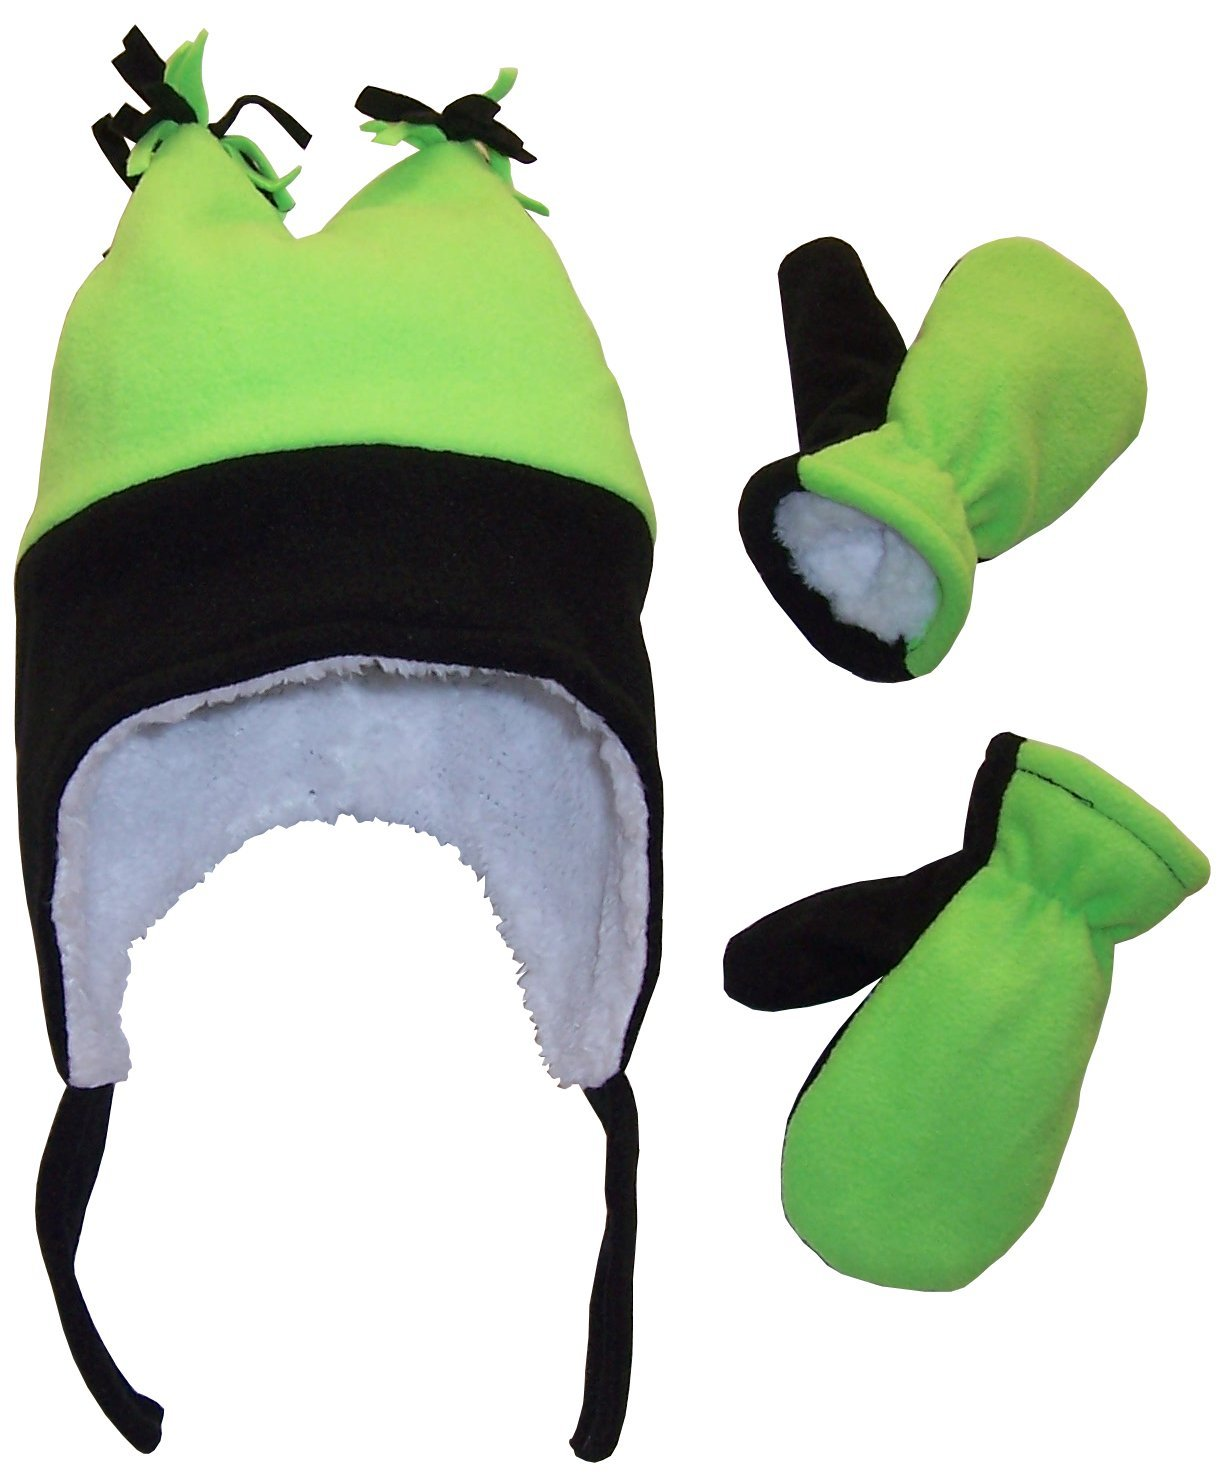 N'Ice Caps Boys Sherpa Lined Micro Fleece Four Corner Ski Hat and Mitten Set N'Ice Caps 2763-SH-BC-IL